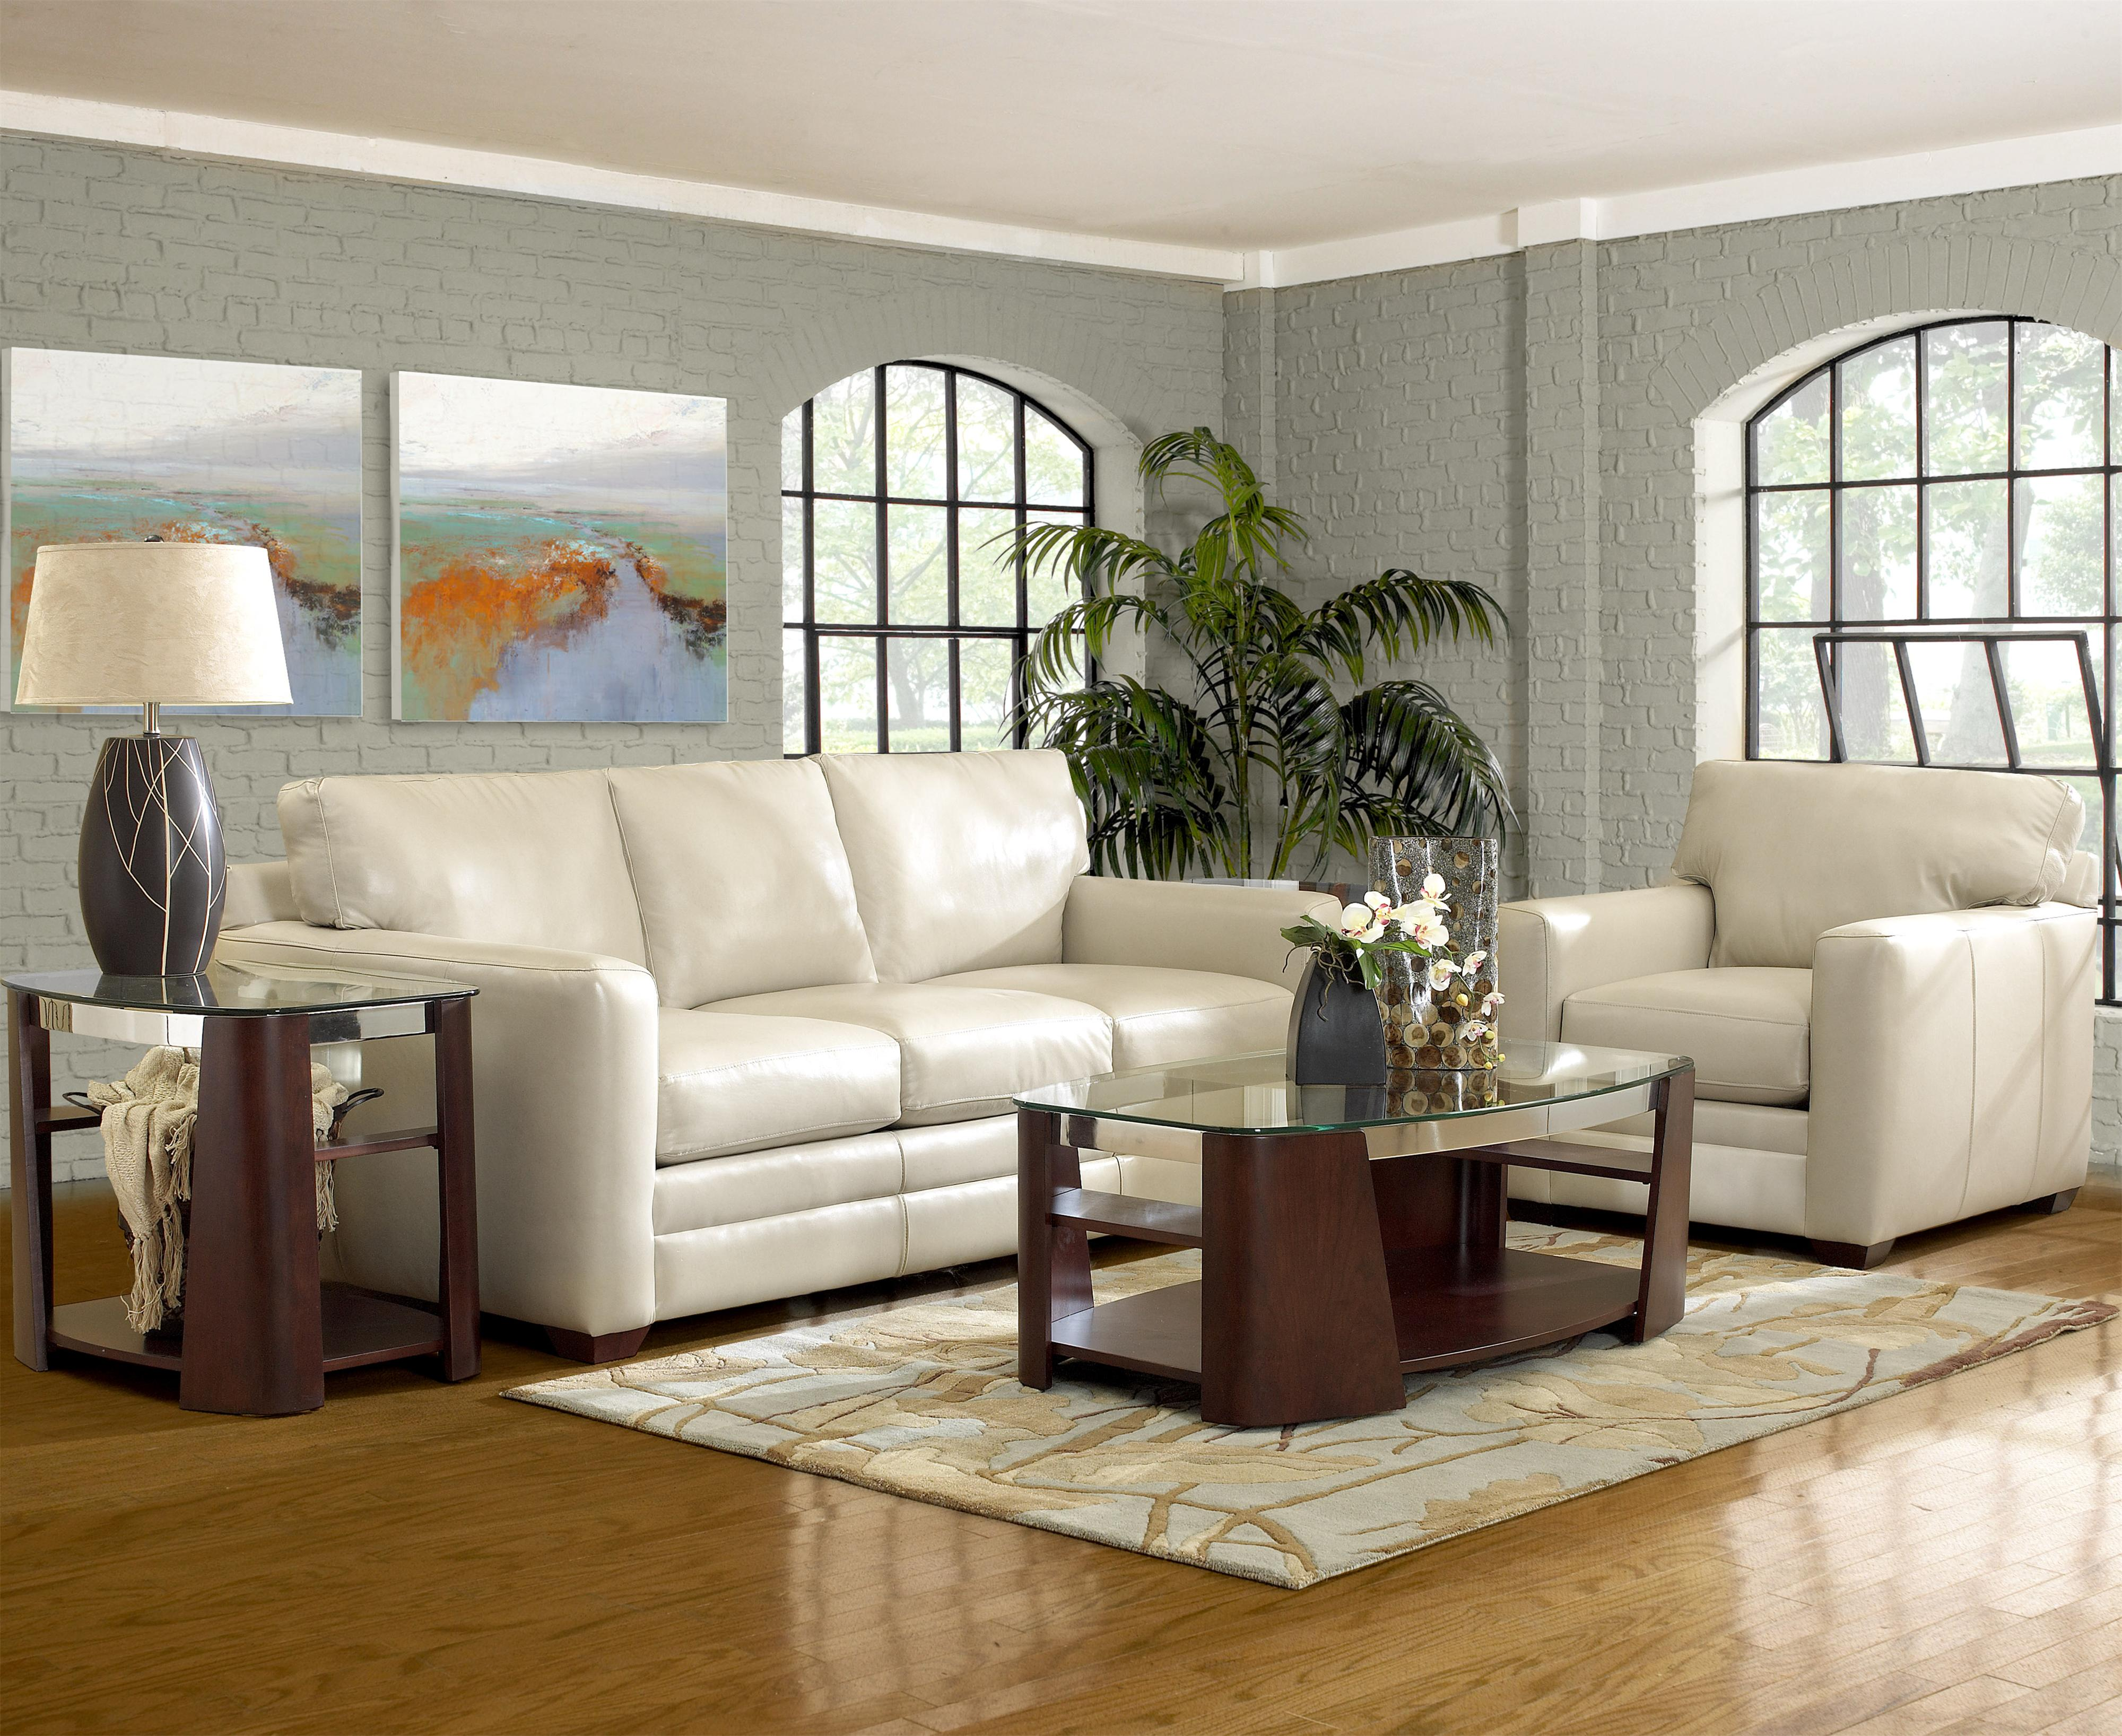 Fedora Stationary Living Room Group by Klaussner at Northeast Factory Direct